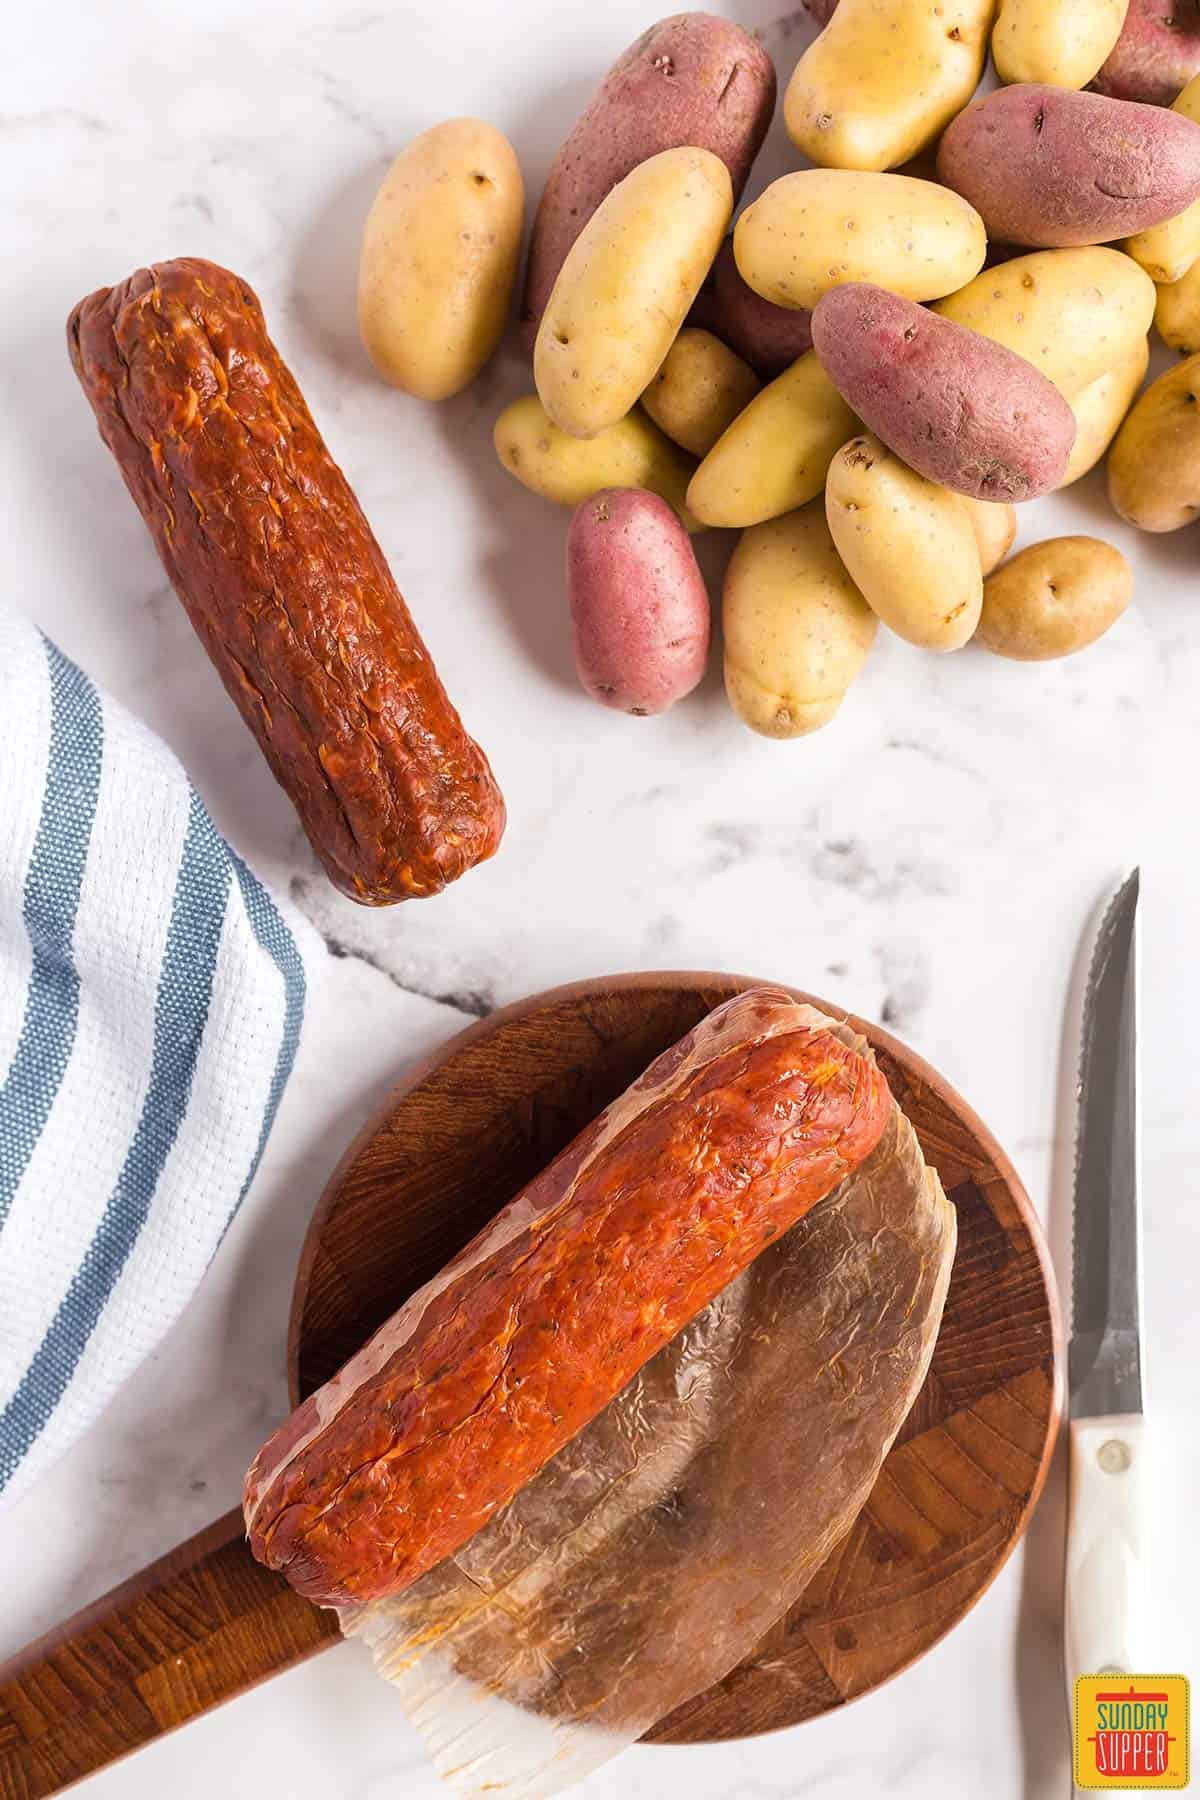 Removing the skin from Portuguese chorizo